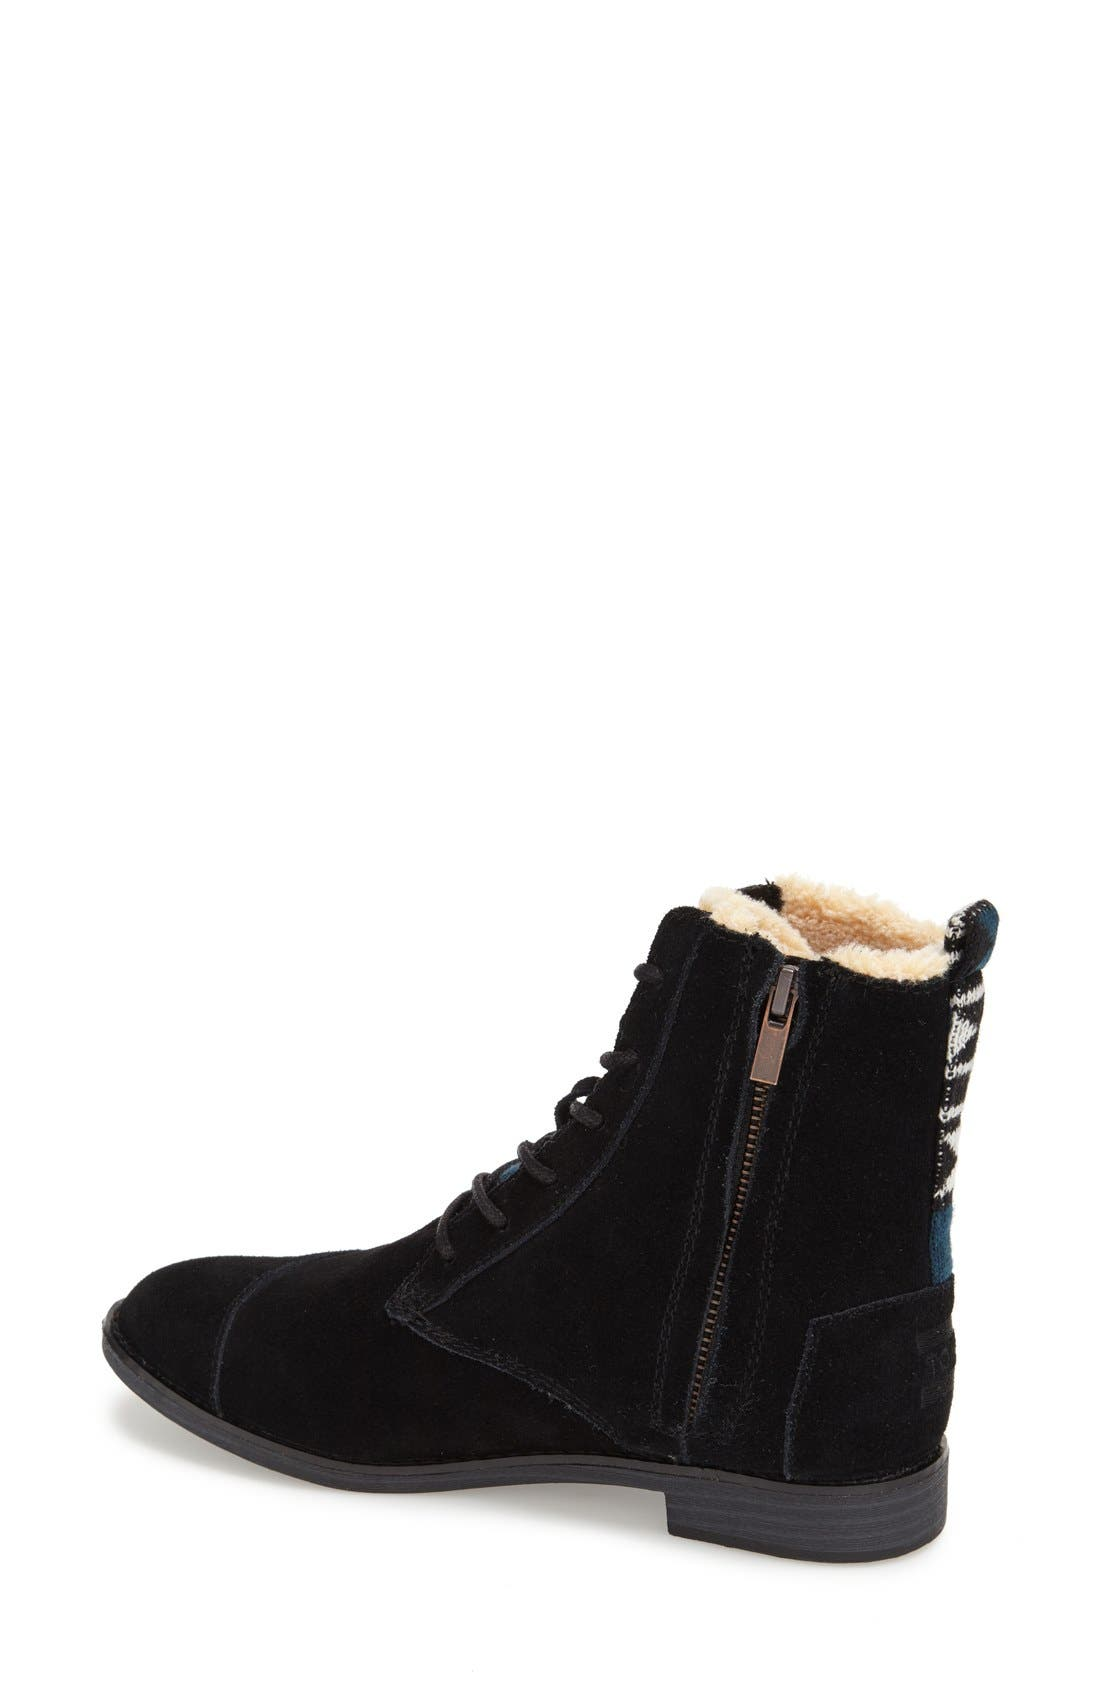 Alternate Image 2  - TOMS 'Alpa' Water Resistant Suede Boot (Women)